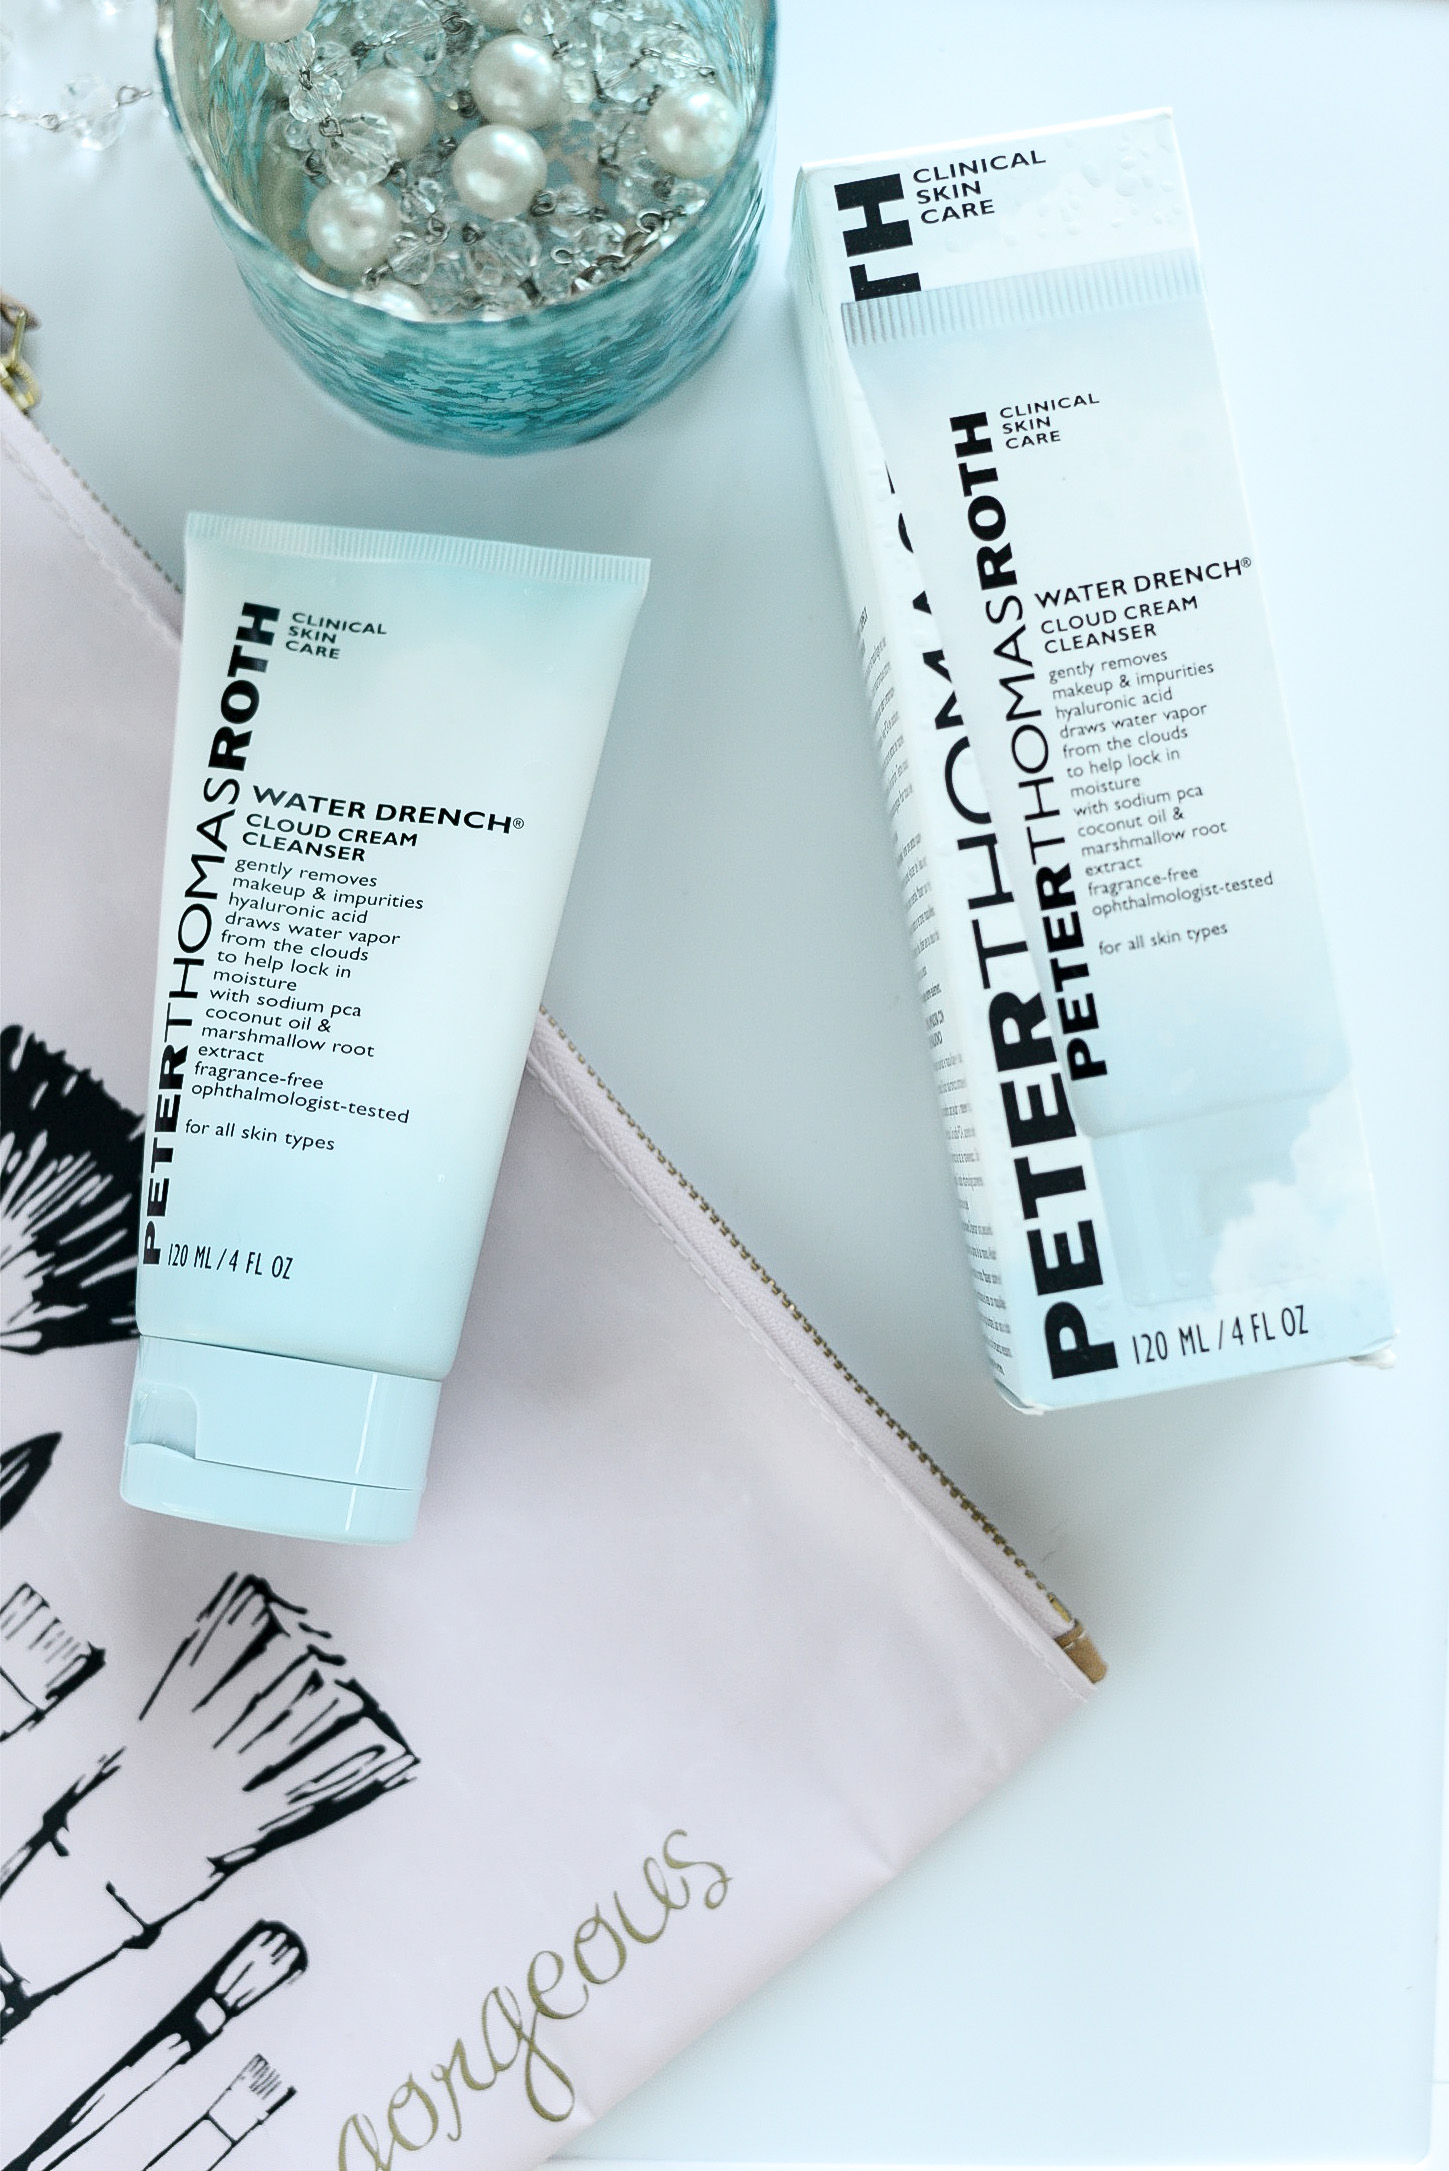 The Skincare Product I Use to Start and End My Day- Peter Thomas Roth Water Drench Cloud Cream Cleanser